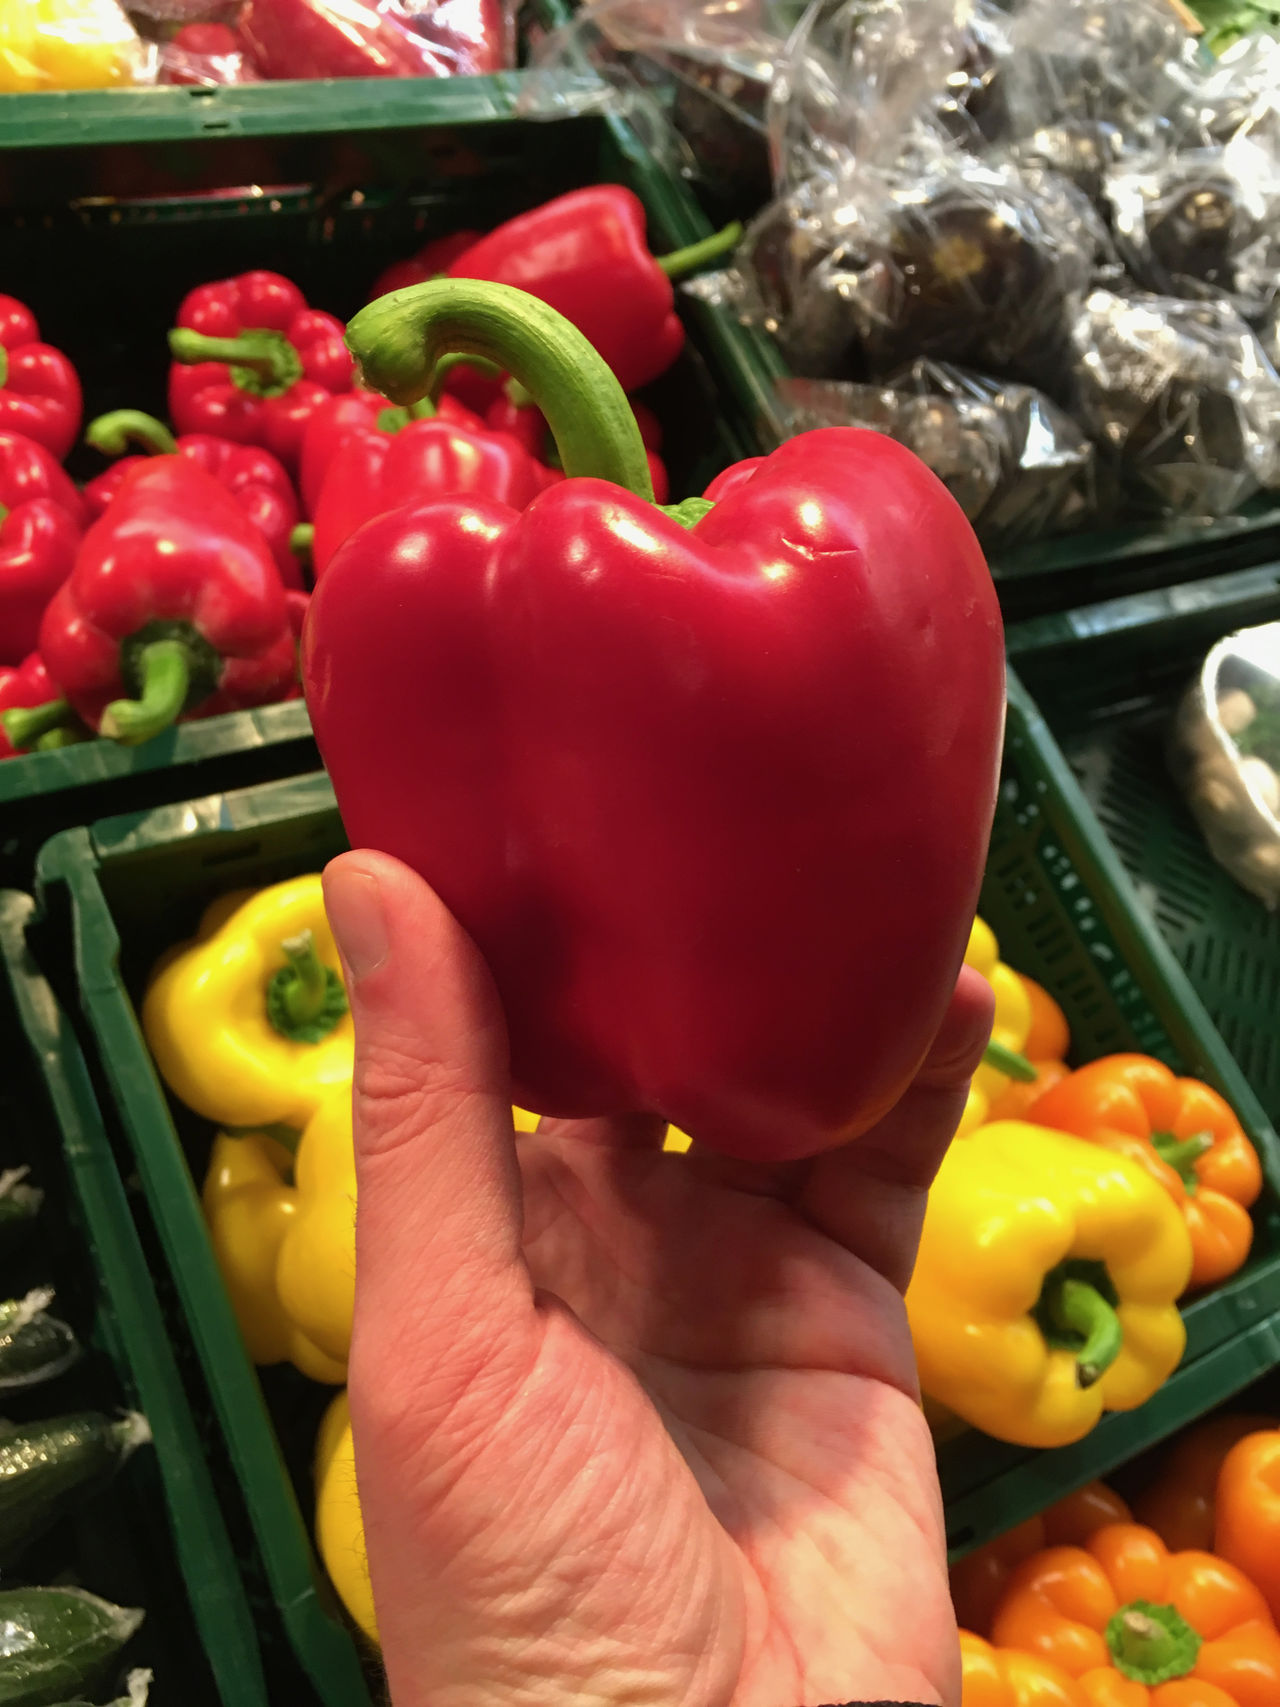 Backgrounds Bell Pepper Choice Close-up Day Food Food And Drink Freshness Healthy Eating Large Group Of Objects Market No People Outdoors Red Red Bell Pepper Variation Vegetable Yellow Bell Pepper